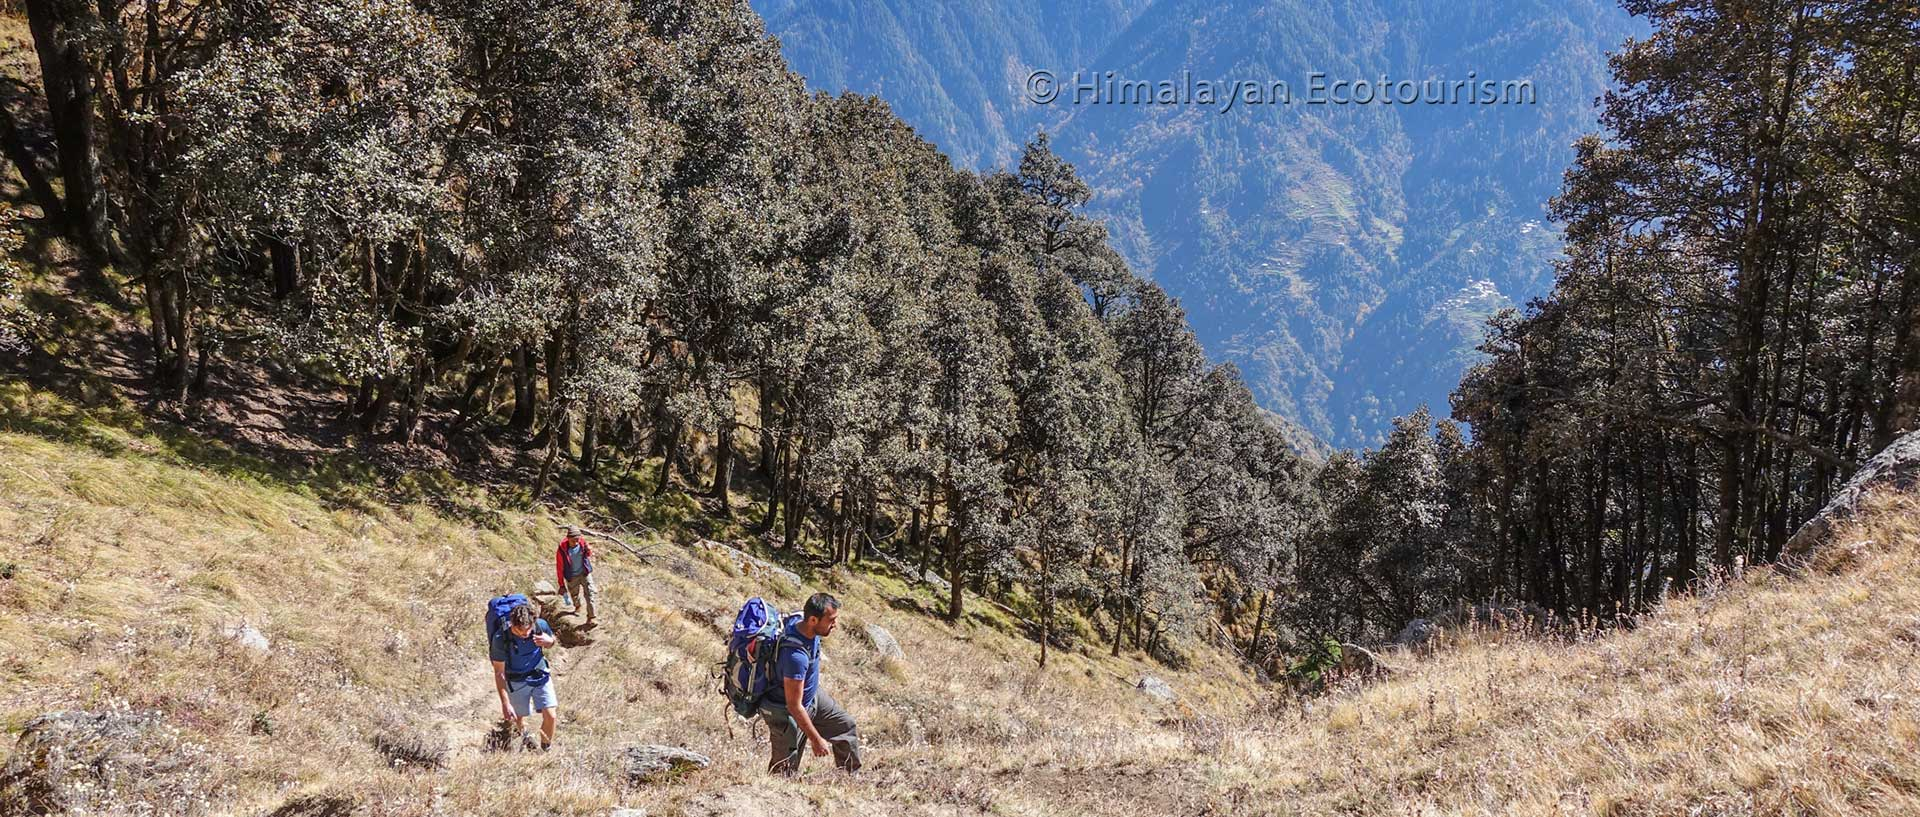 Ookhal trek, Great Himalayan National Park GHNP